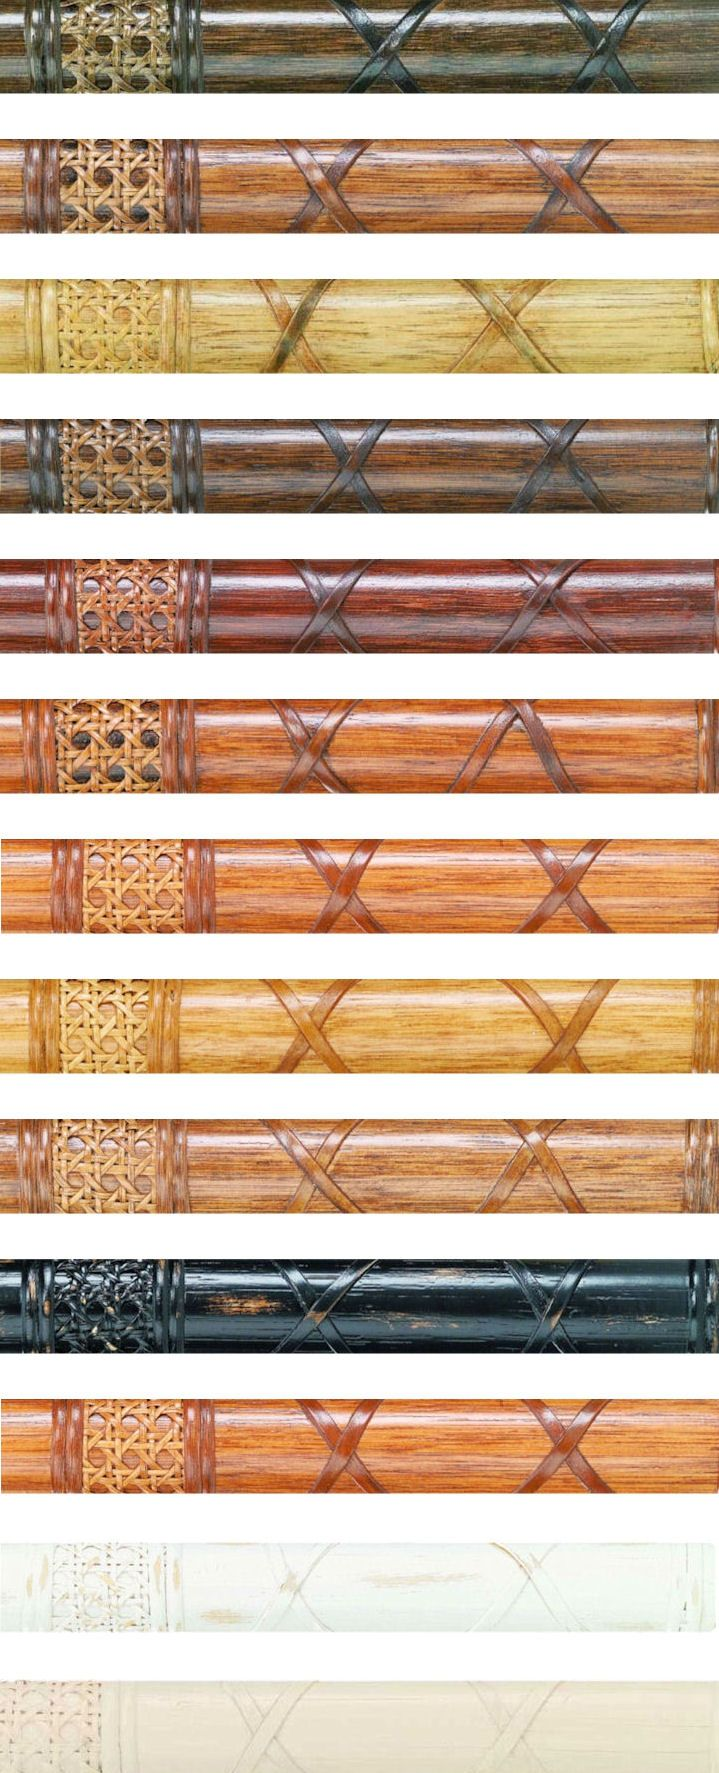 Rattan Furniture Stain finishes for seating and dining